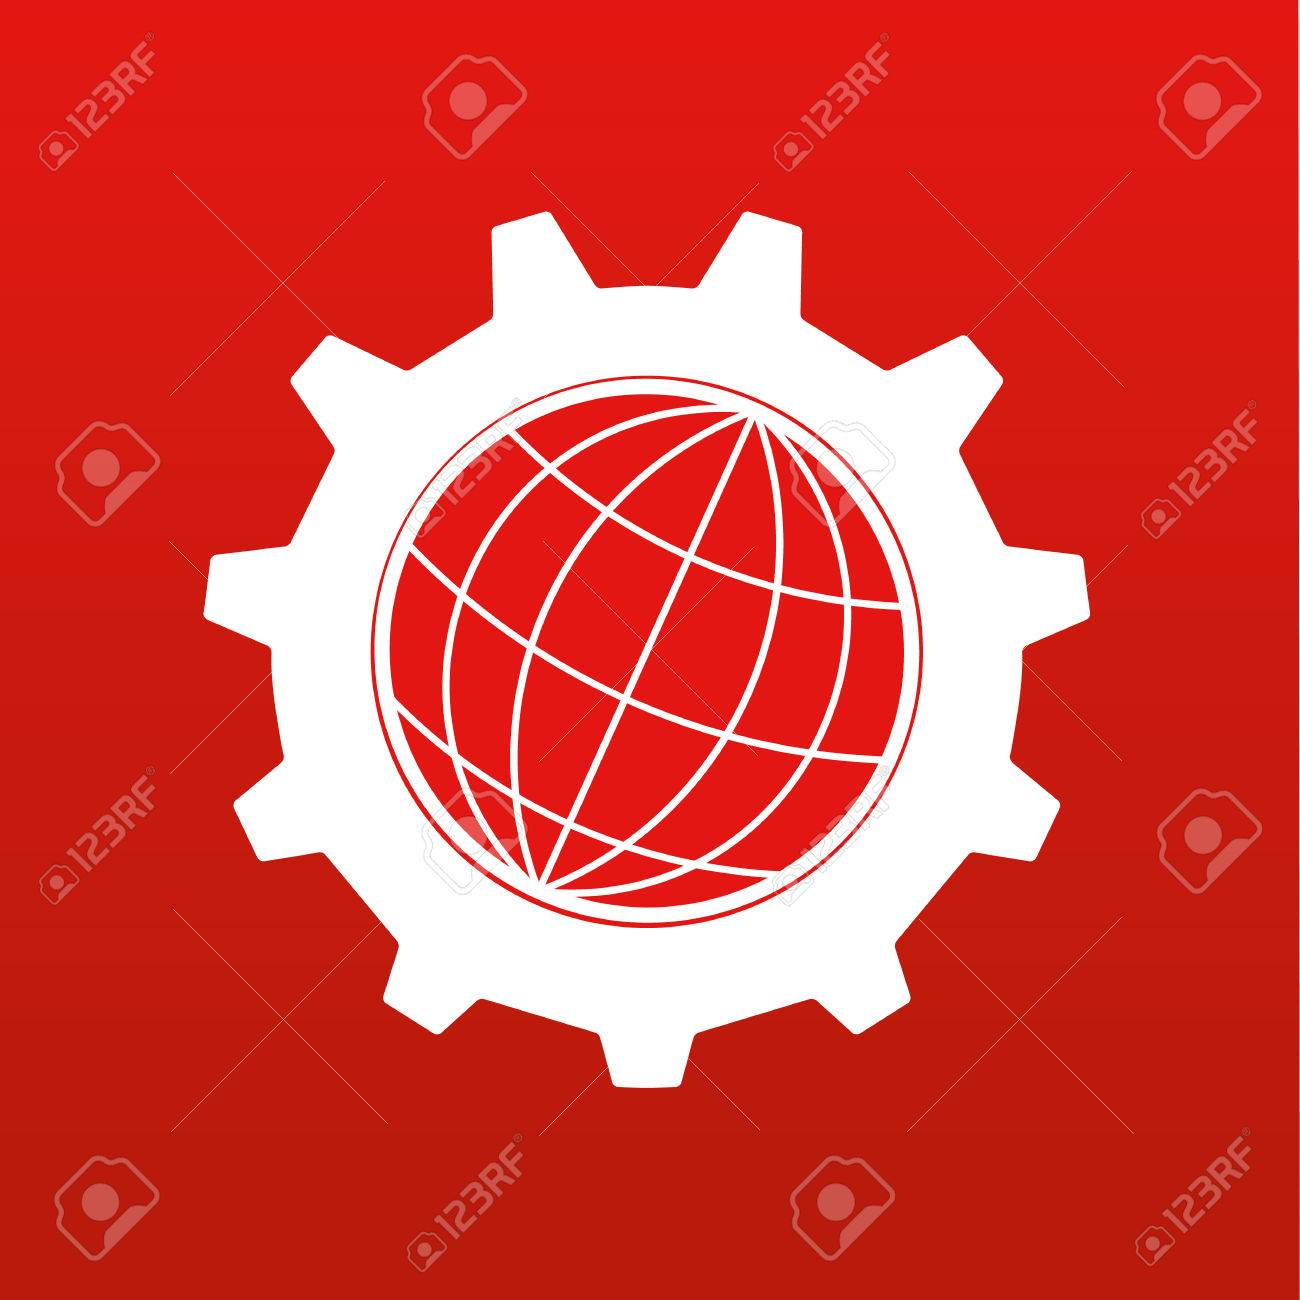 Stylized globe of the Earth inside a gear or cog in white on a red background - 53860555